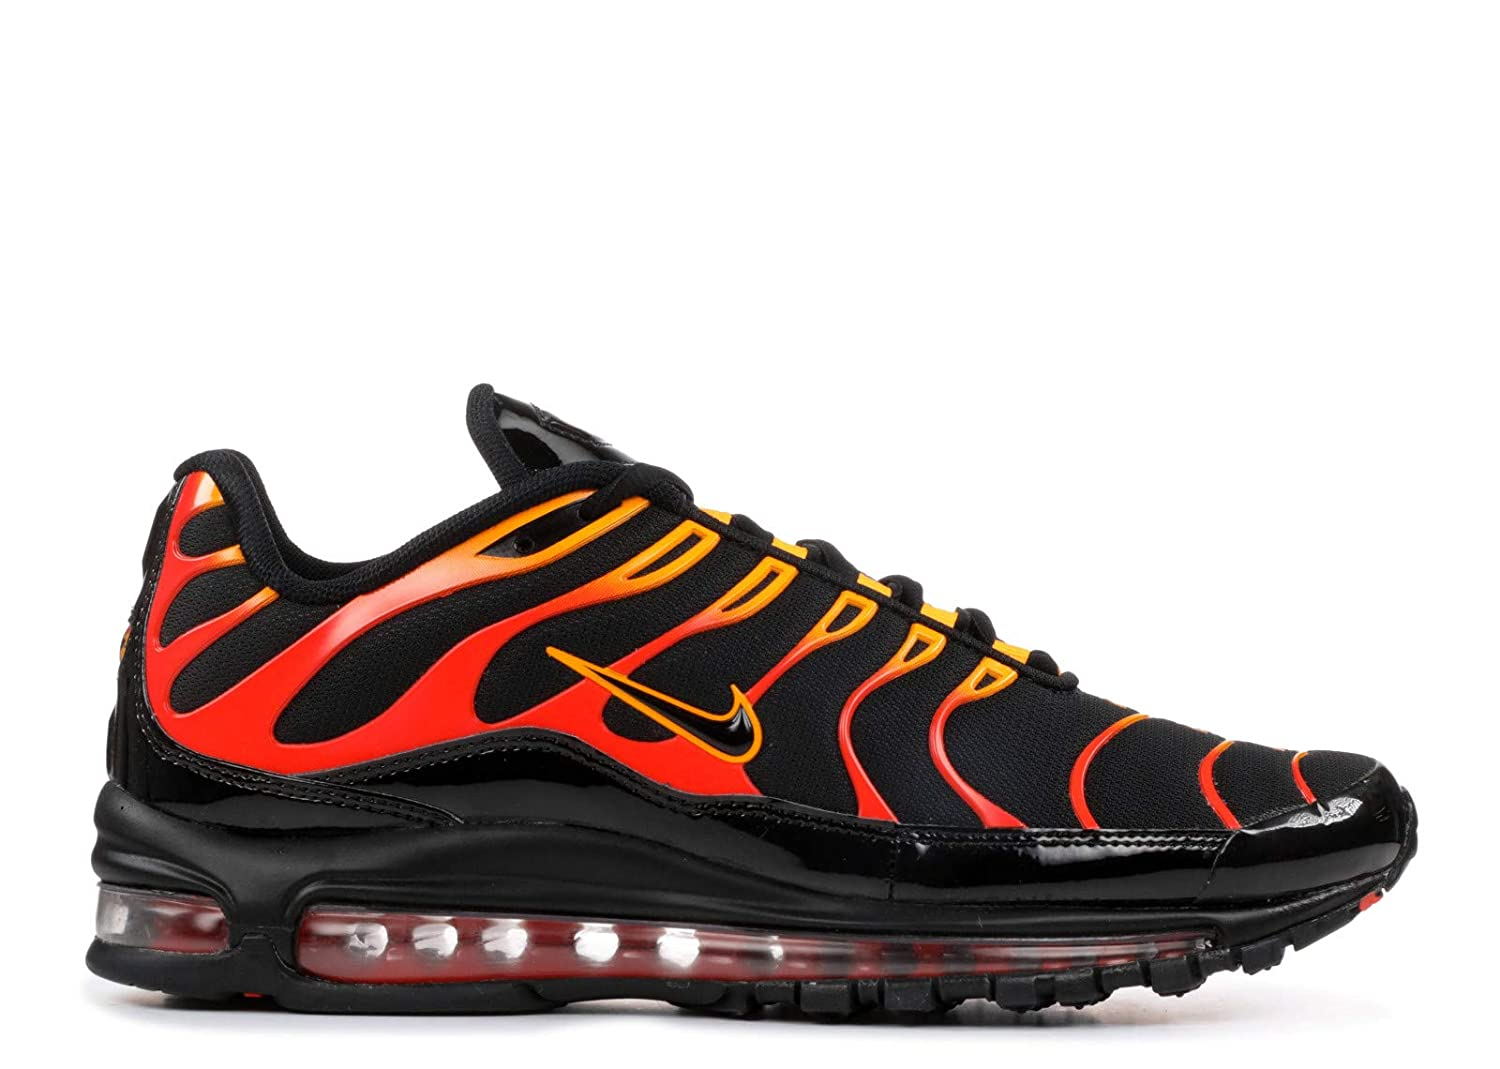 buy online 4777d 567f0 Amazon.com | Nike Air Max 97 / Plus Mens Running Trainers ...